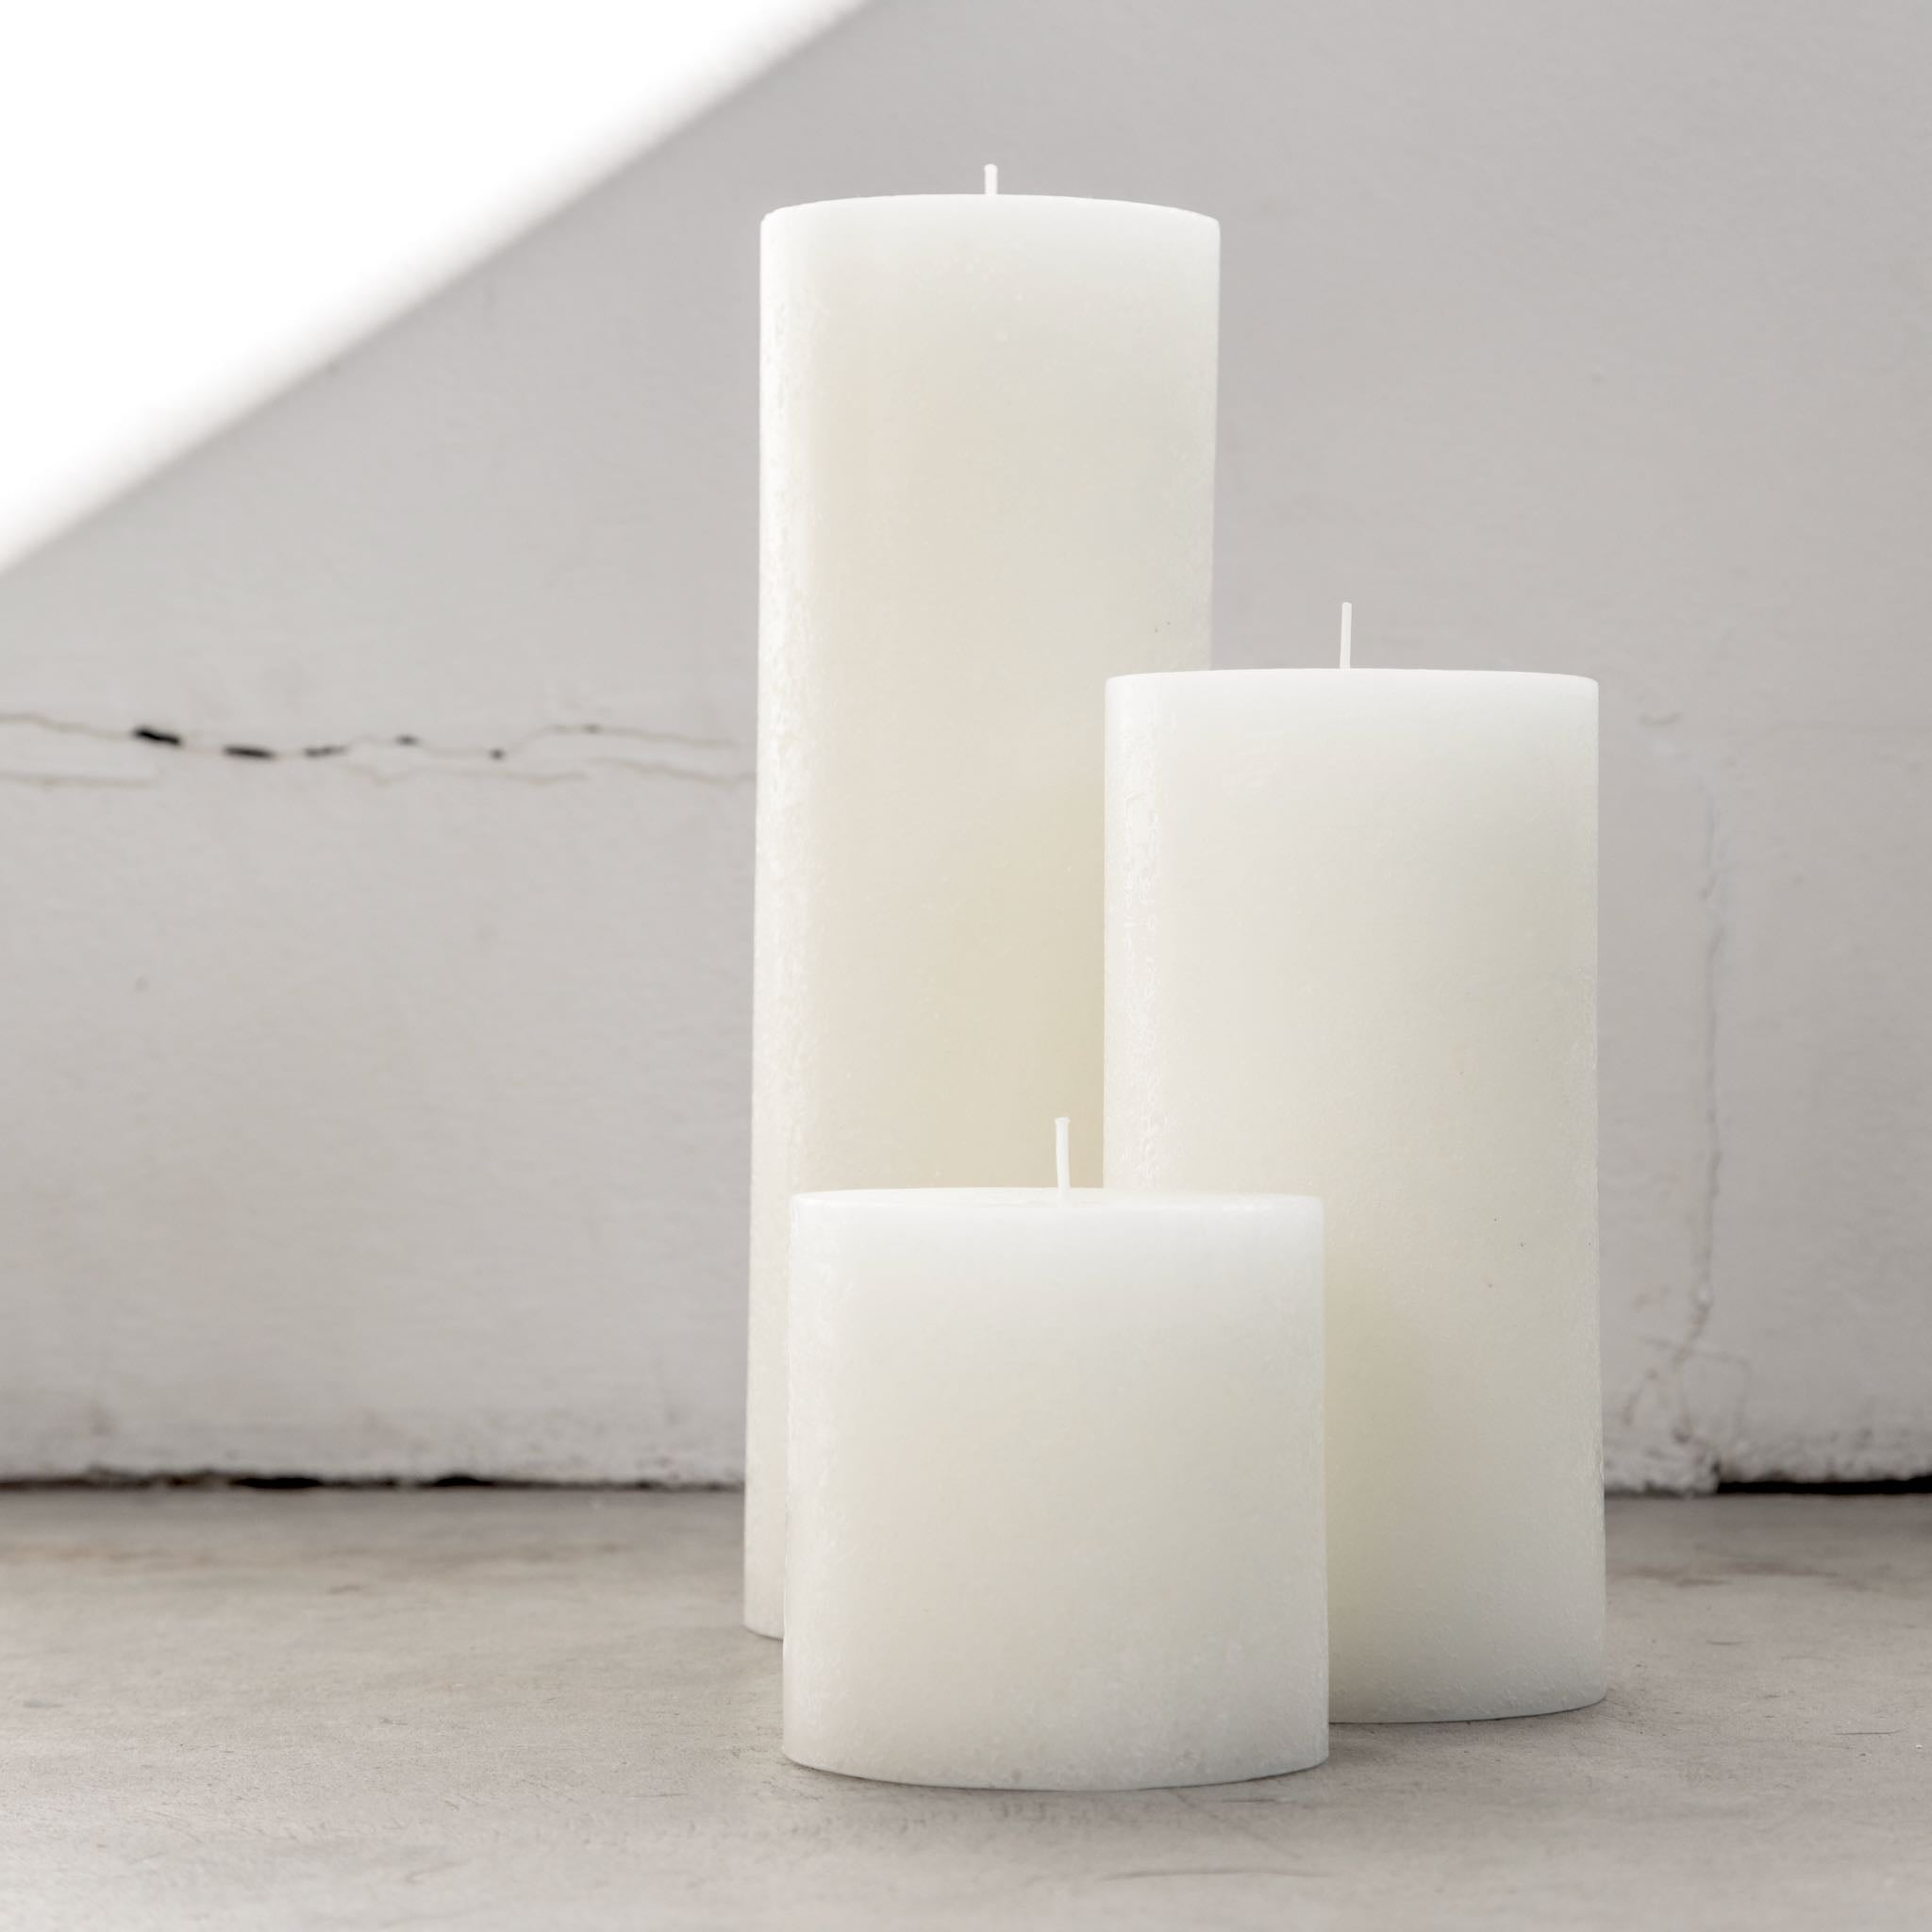 Large textured candles in warm white